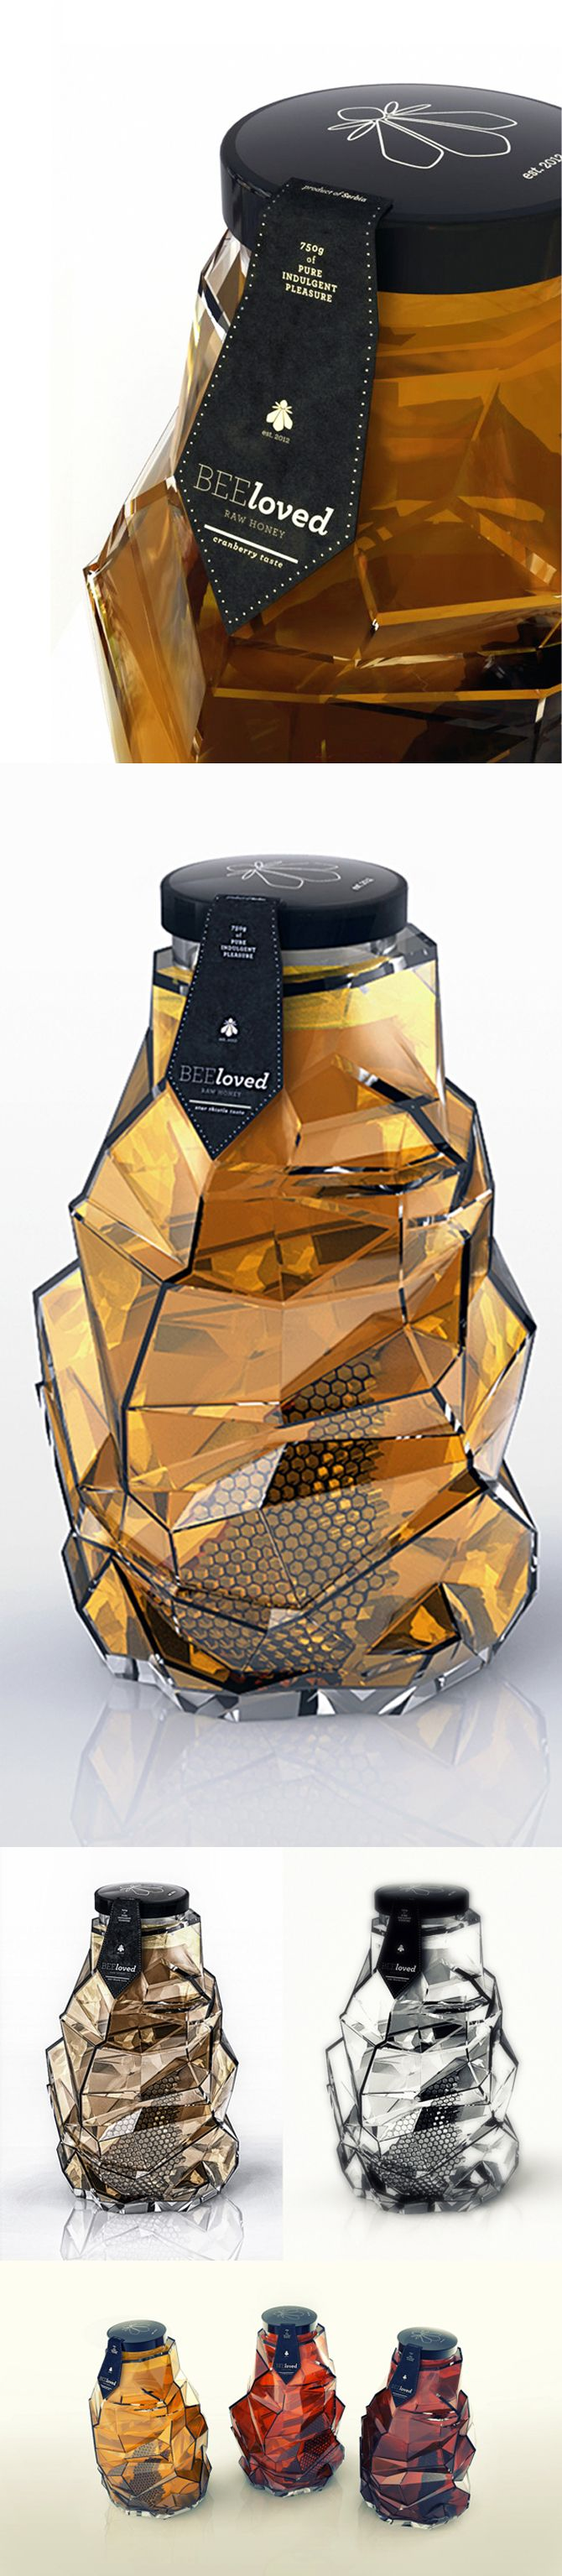 BEEloved Raw Honey packaging designed by Tamara Mihajlovic- such a cool solution.